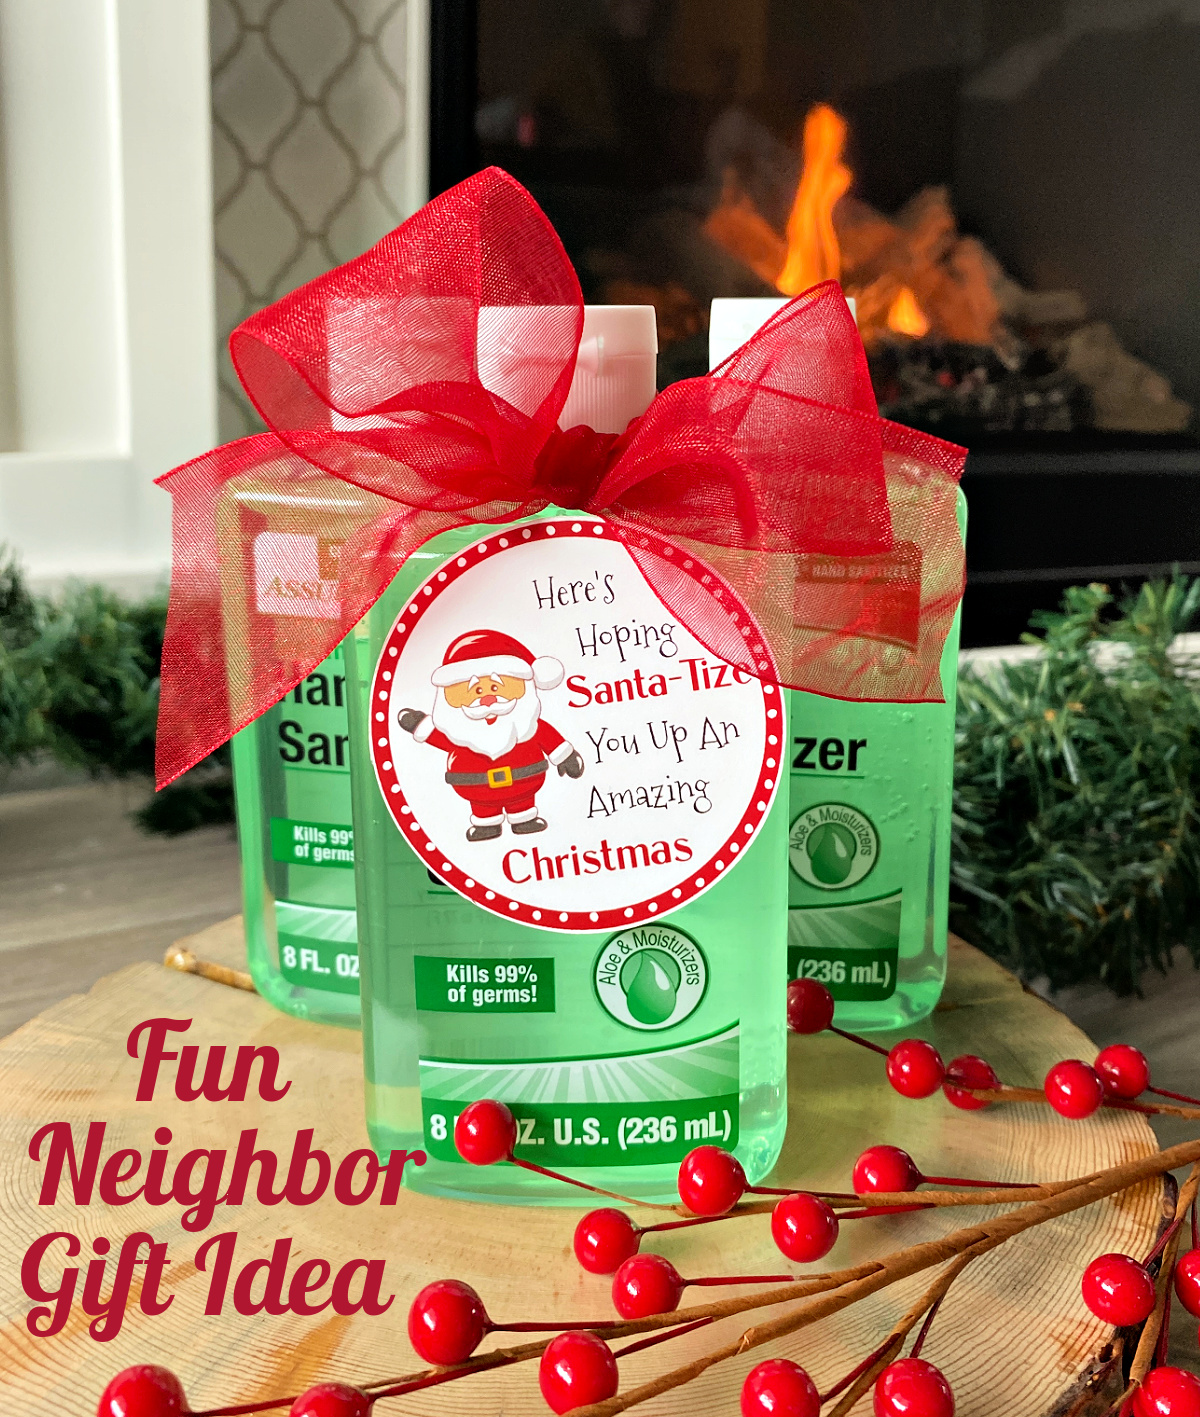 Simple Gifts for Neighbors